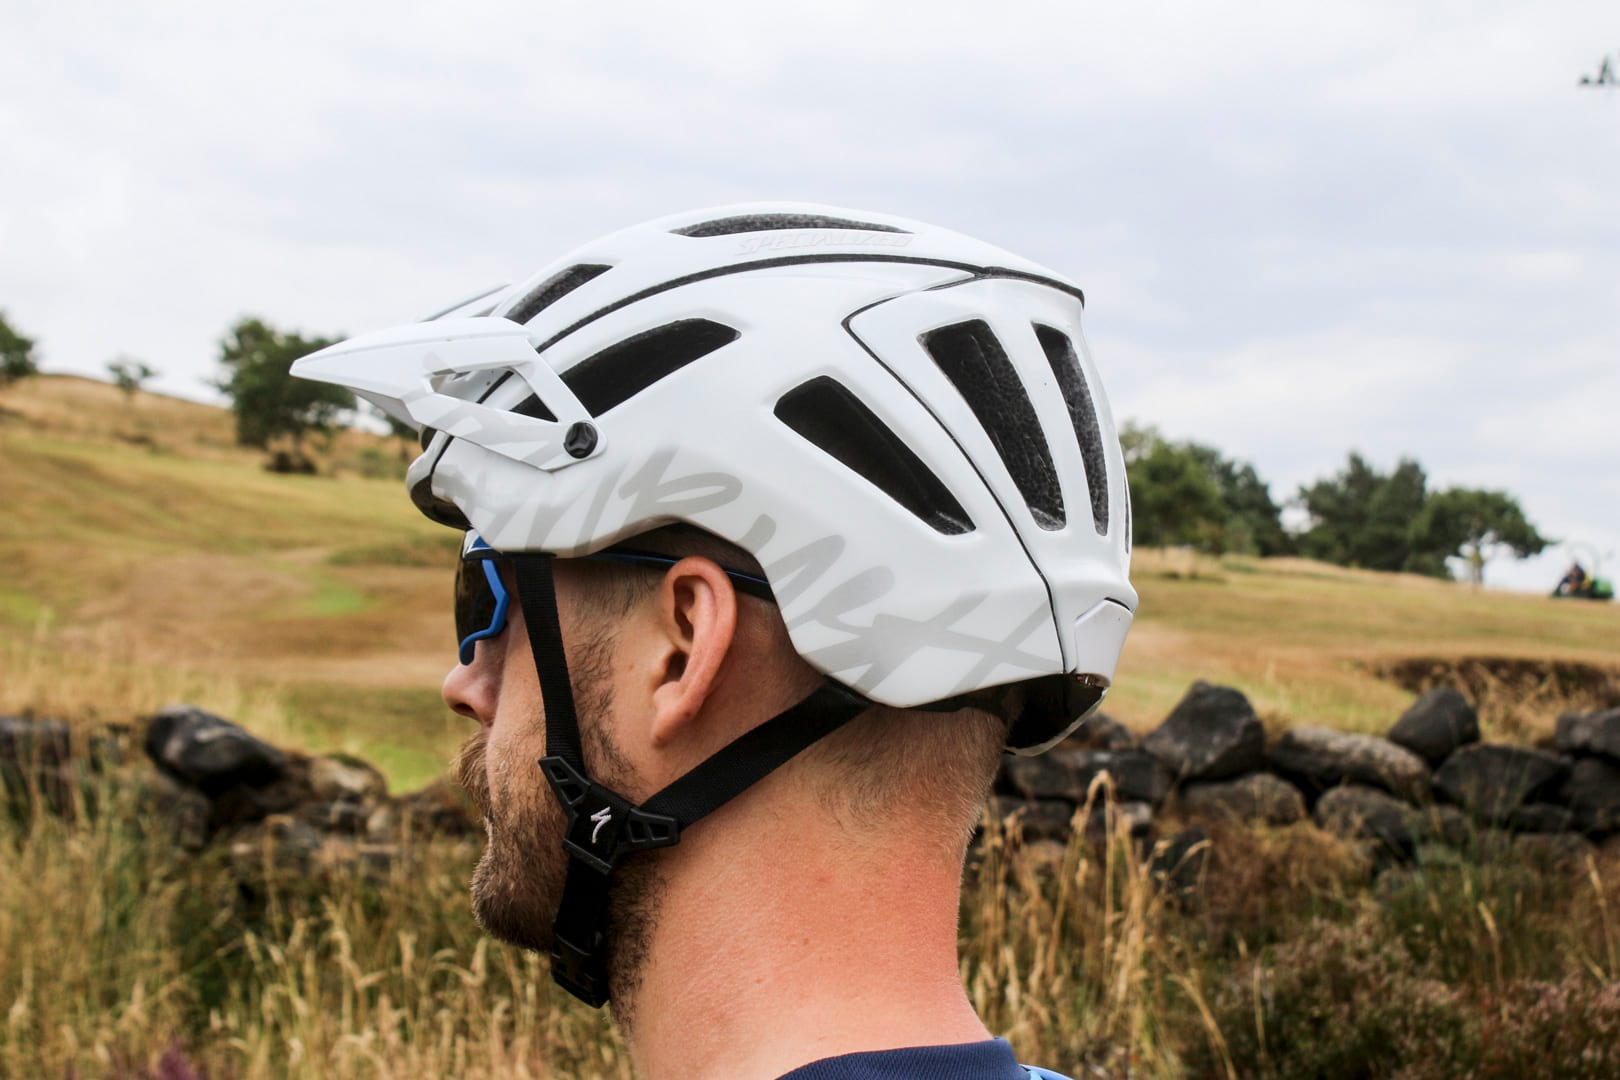 cute where can i buy fantastic savings Helmet Review: Bontrager Rally MIPS vs Specialized Ambush ...